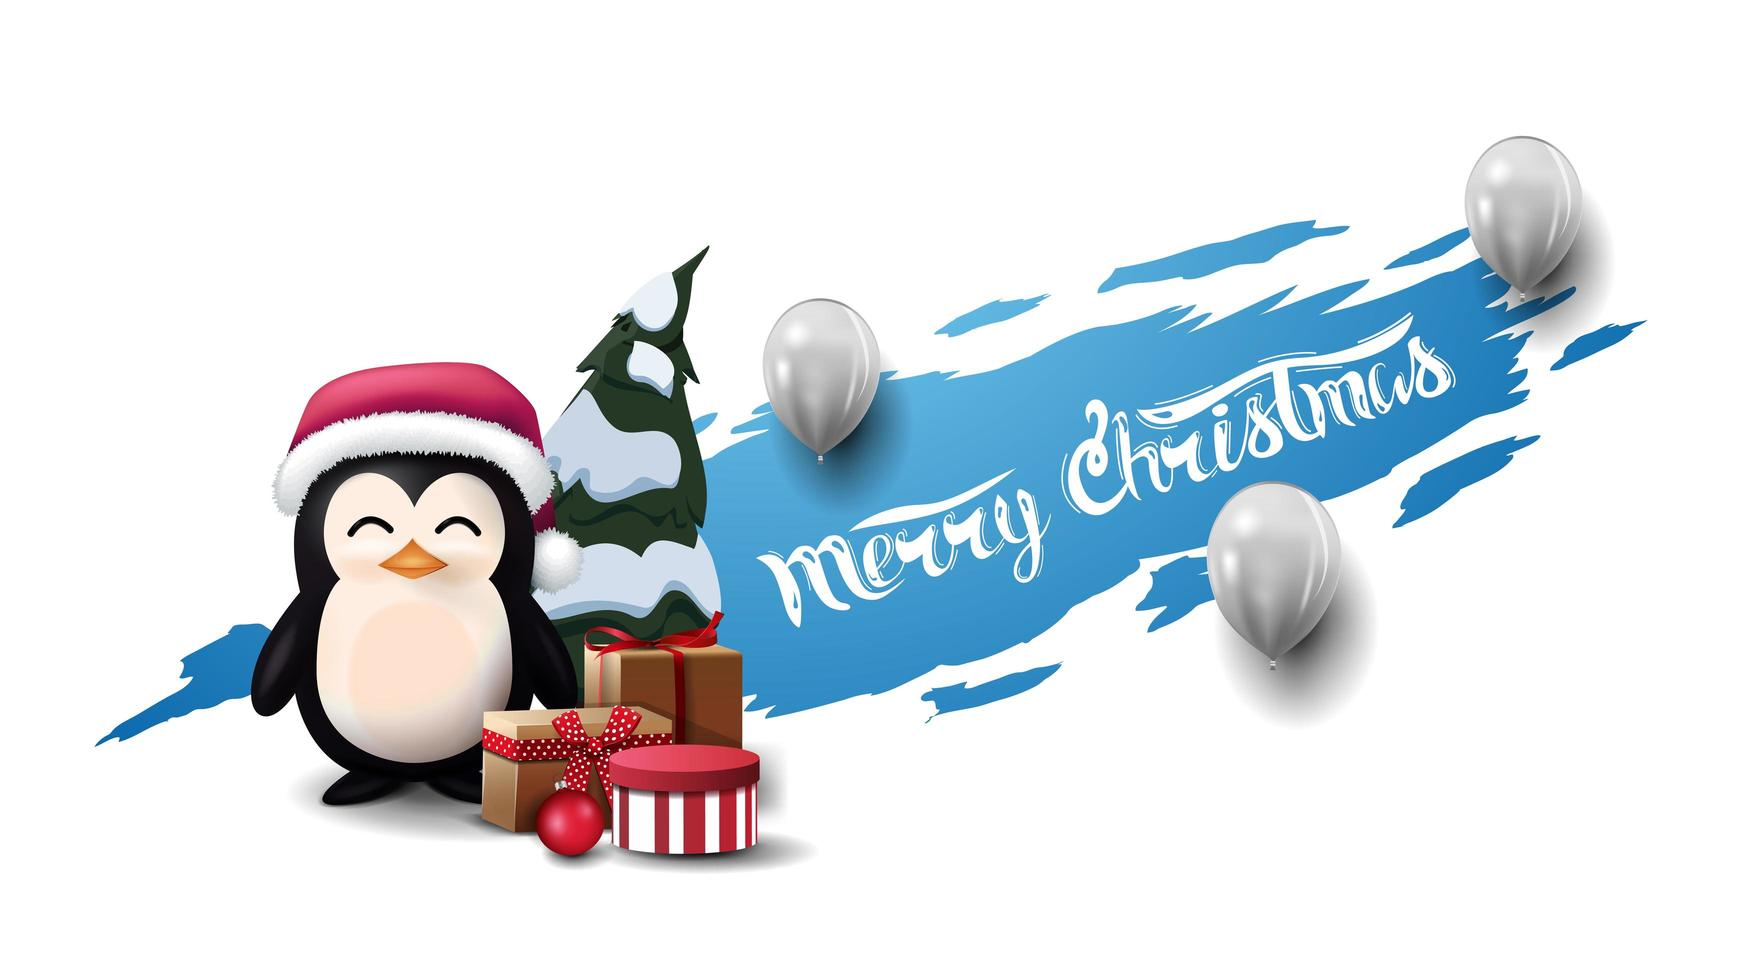 Merry Christmas, modern postcard with white balloons and penguin in Santa Claus hat with presents. Blue torn banner isolated on white background. vector